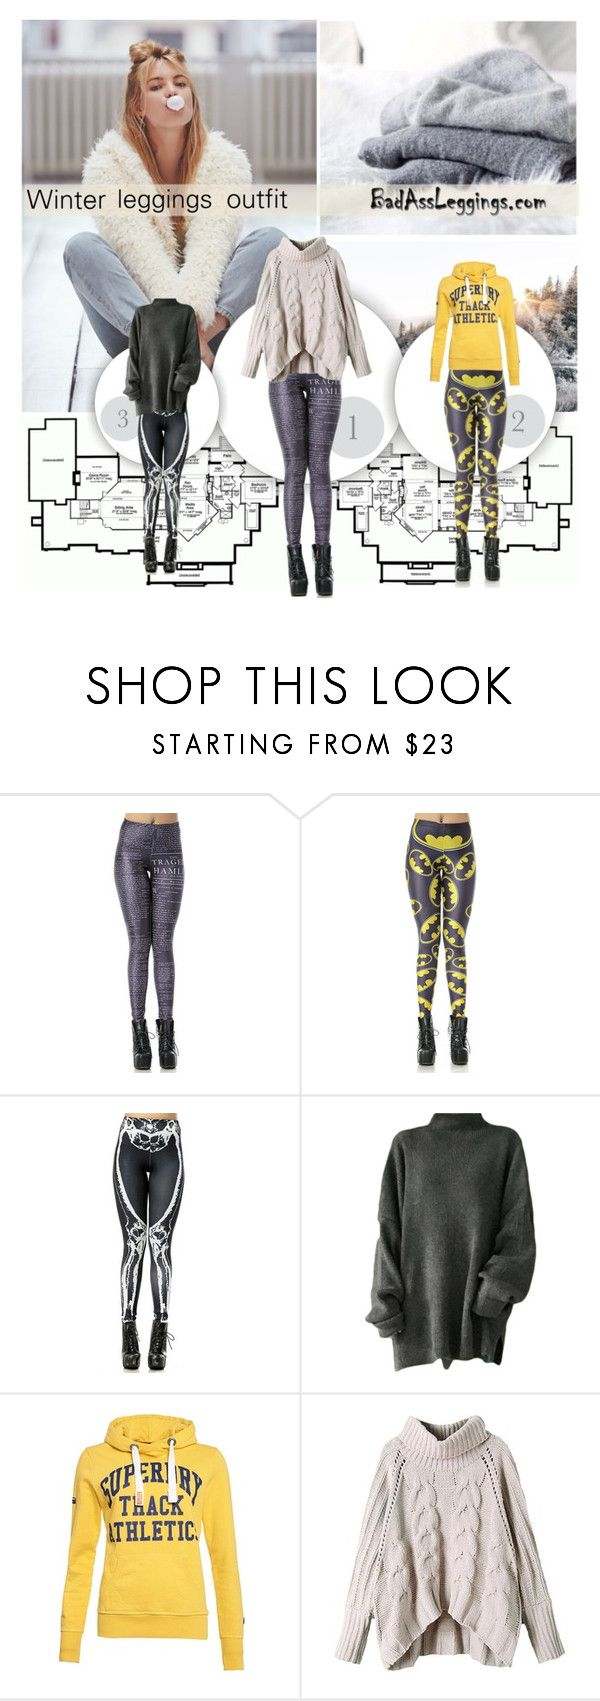 """Winter leggings outfit"" by pinki1994 ❤ liked on Polyvore featuring Home Source International, Free People, 291 Venice, Superdry and badassleggings"